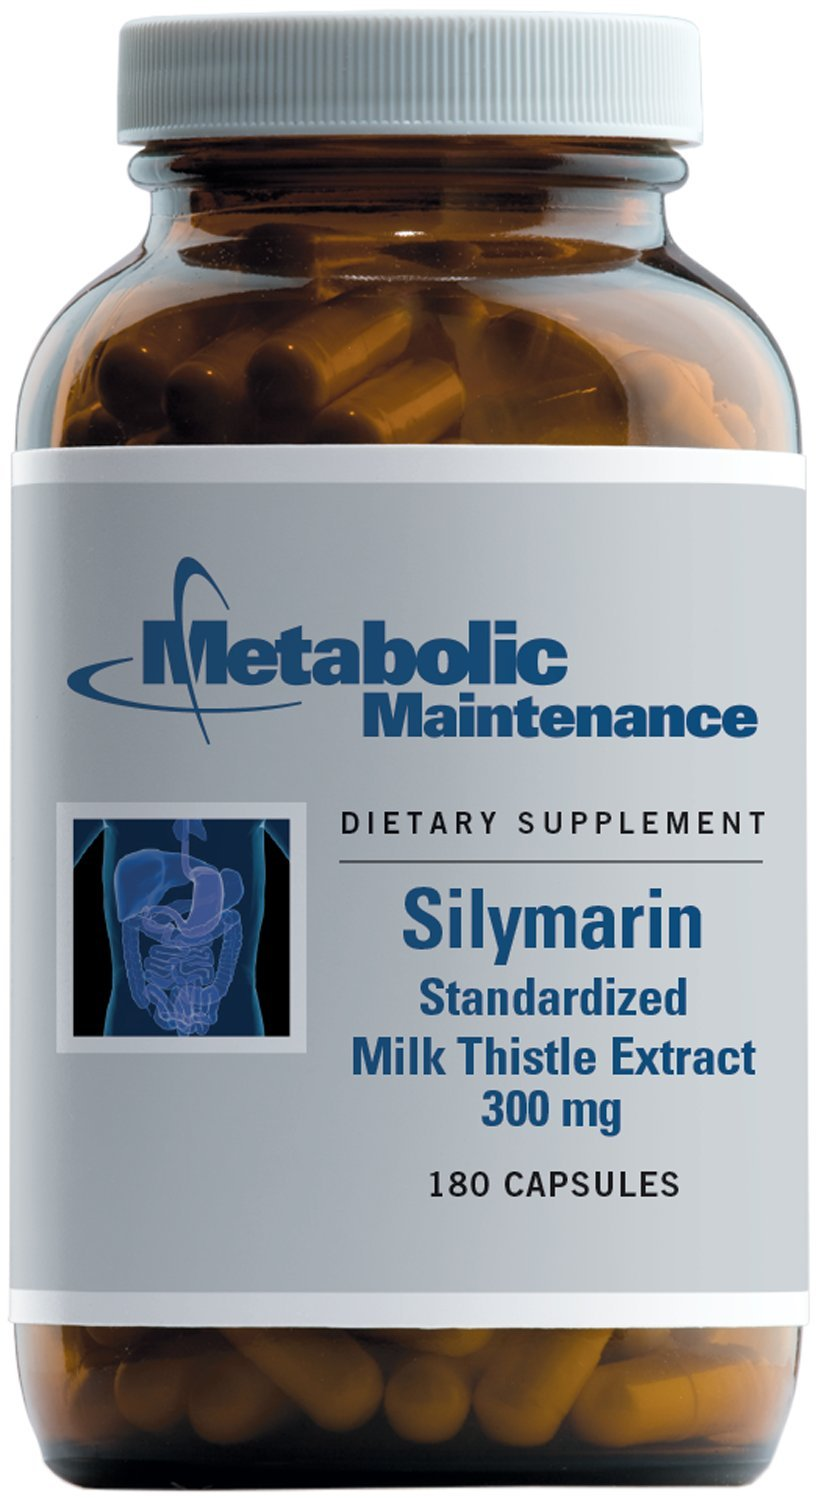 Metabolic Maintenance Silymarin - 300 mg Standardized 80% Milk Thistle for Liver Support (180 Capsules)